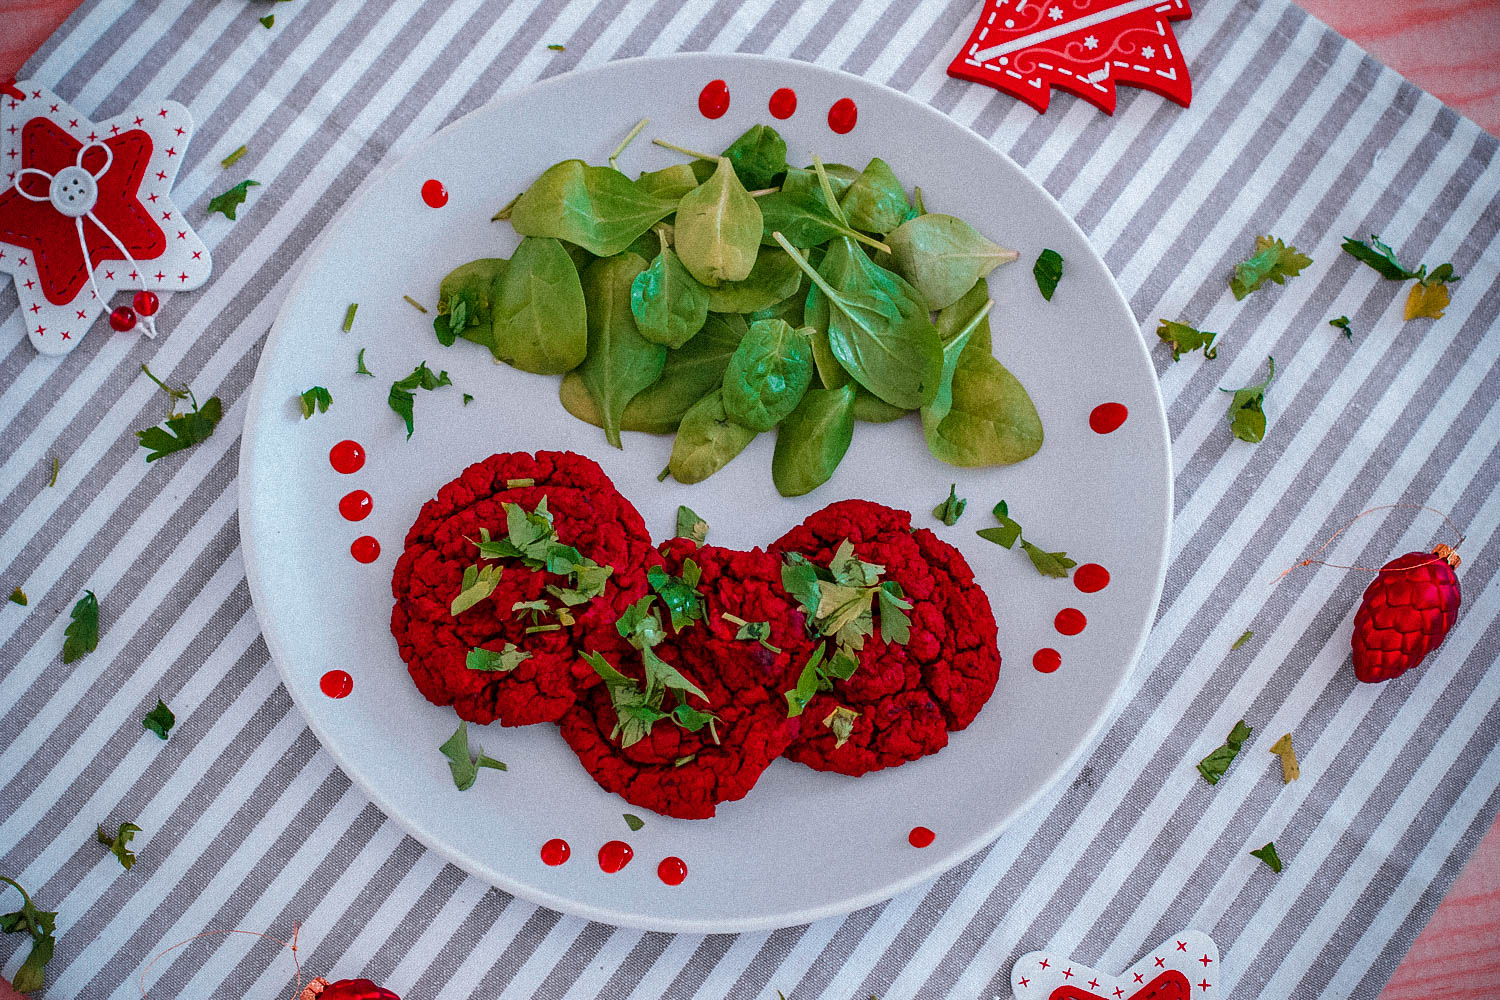 beet-and-lentils-burger-recipe (5)